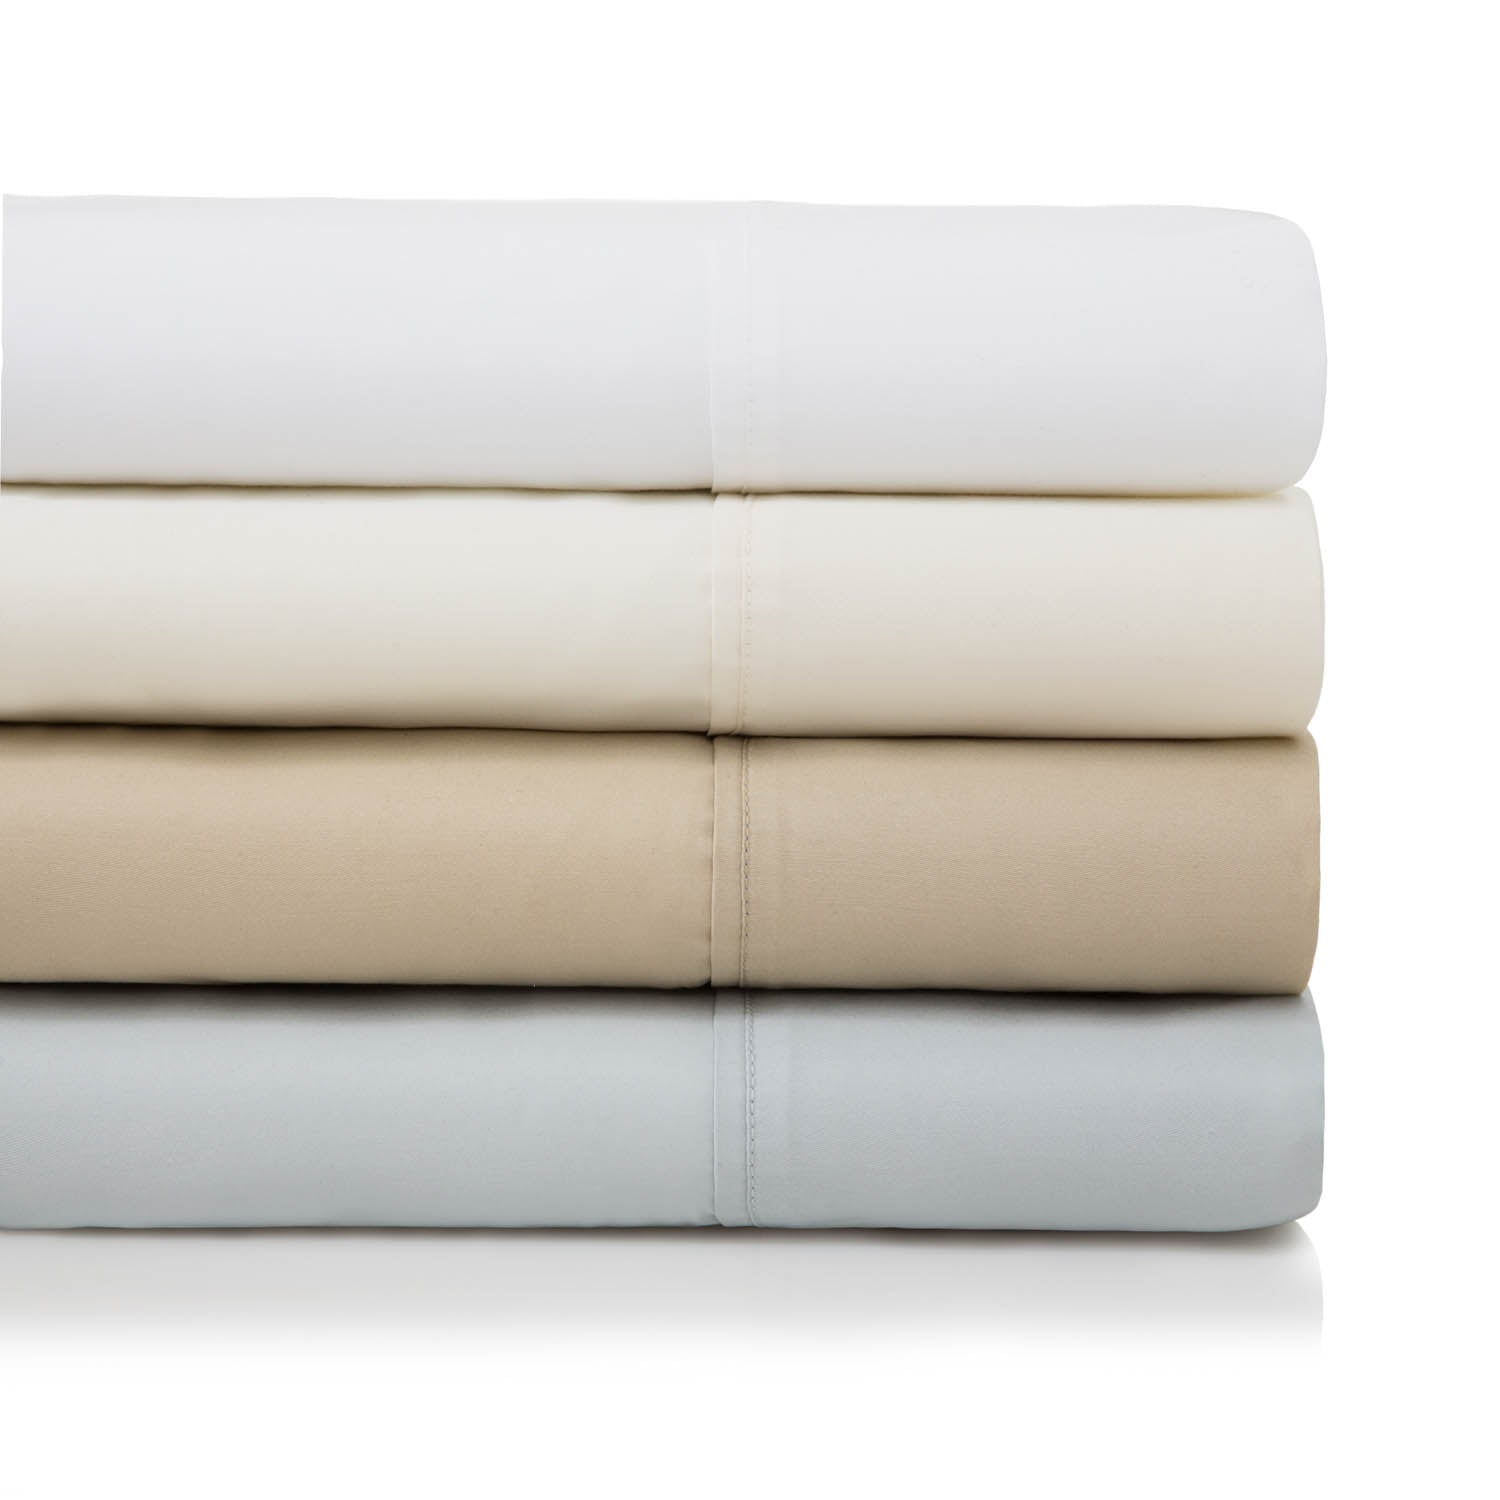 Malouf Woven 600 TC Cotton Blend Pillowcase